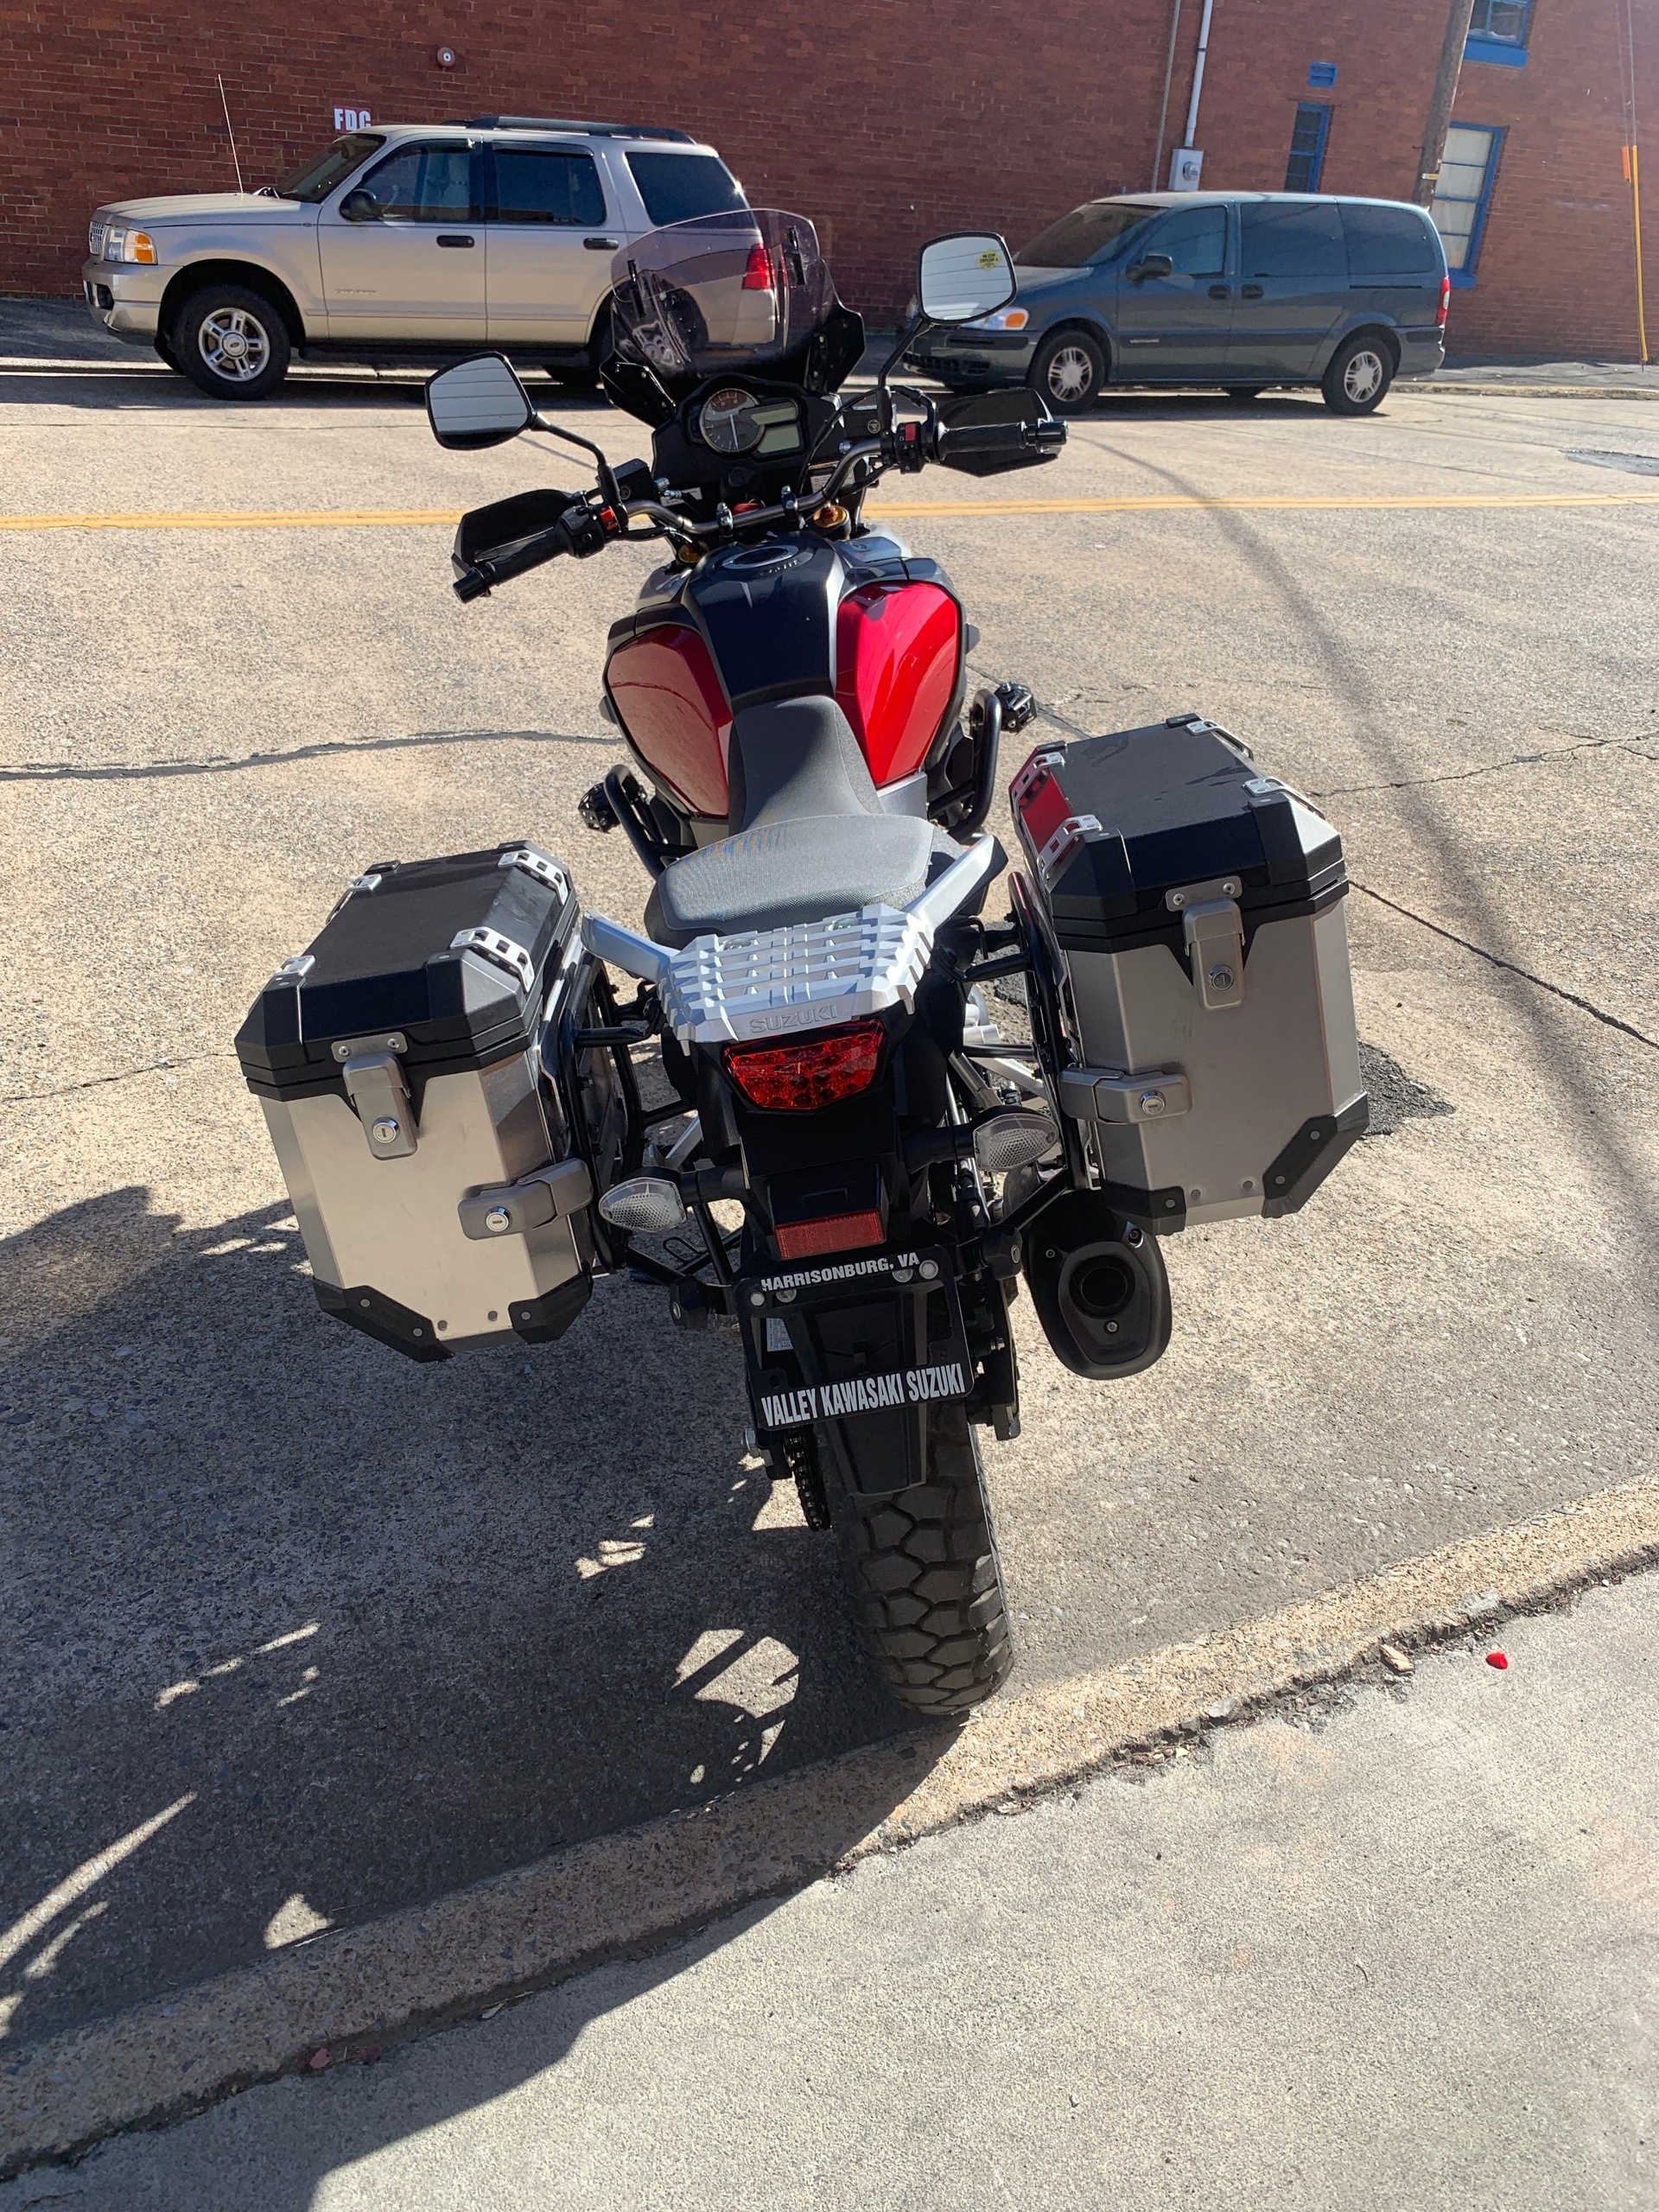 2014 Suzuki V-Strom 1000 ABS in Kingsport, Tennessee - Photo 3